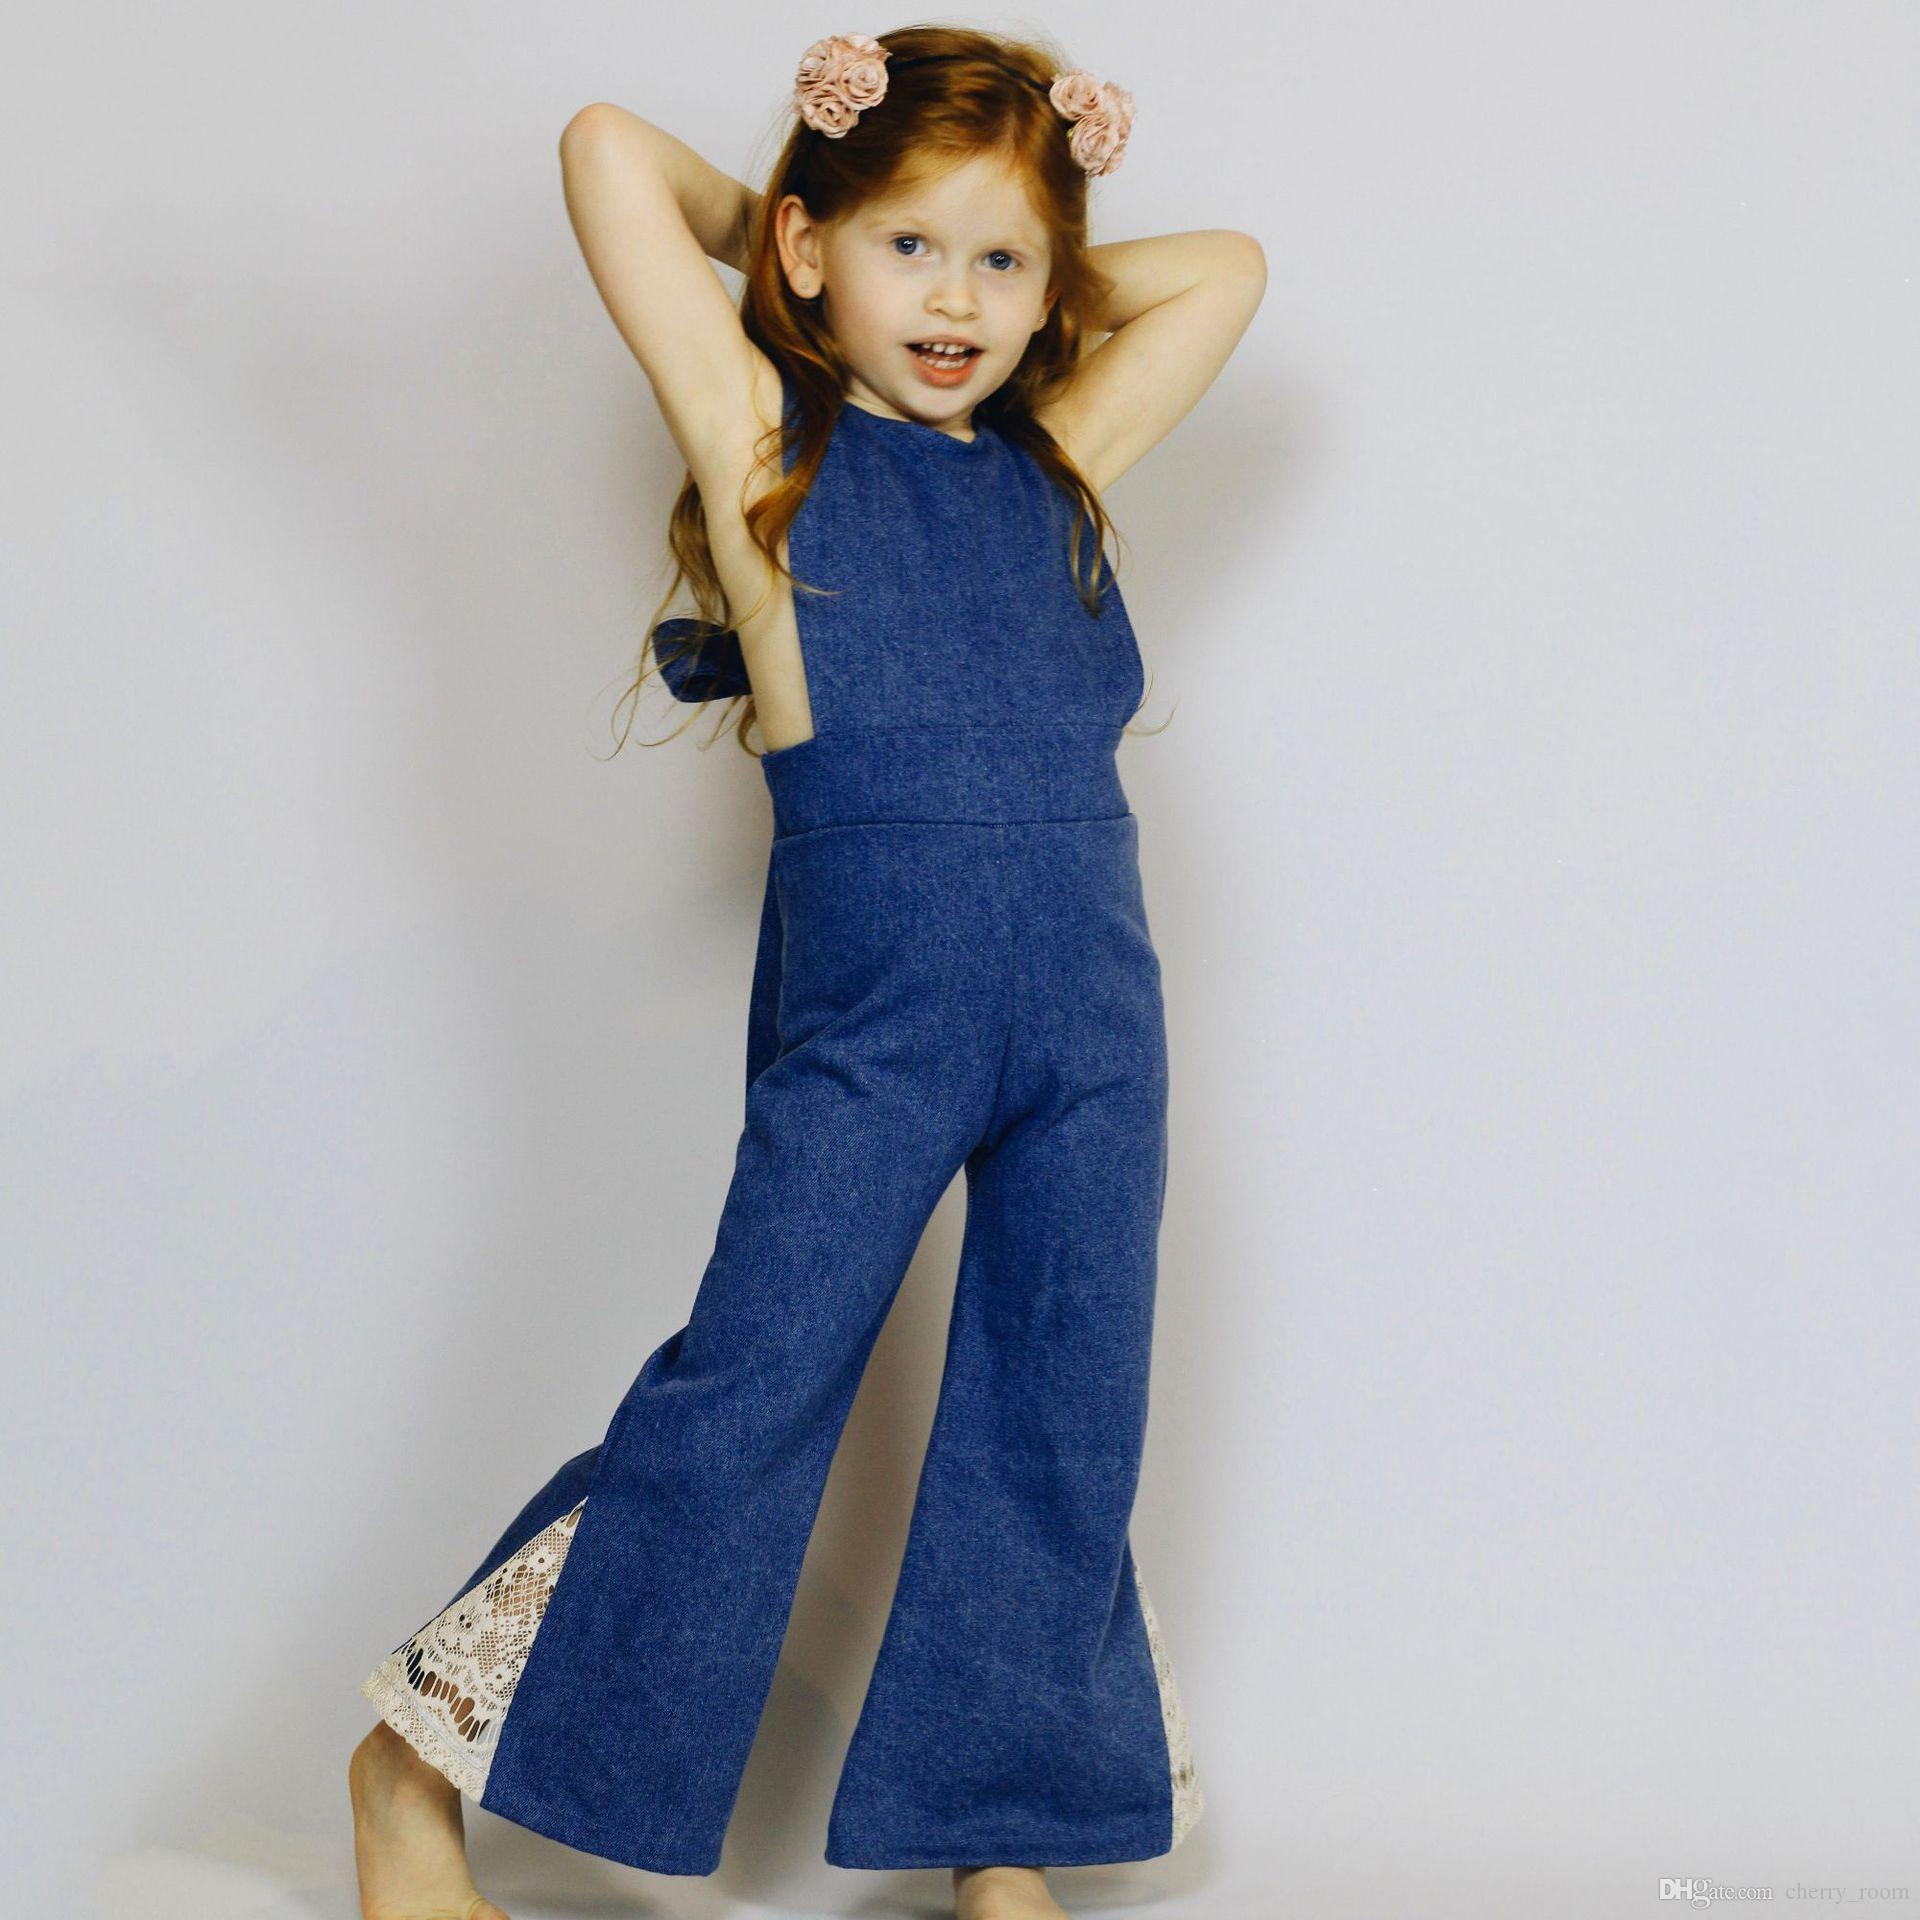 acd16bb3baa 2018 Fashion Kids Girls Jumpsuits Baby Girl Overalls Jeans Cotton Bodysuits Childrens  Denim Backless Halter Rompers Boot Lace Pants A9603 Boys Dress Pants ...